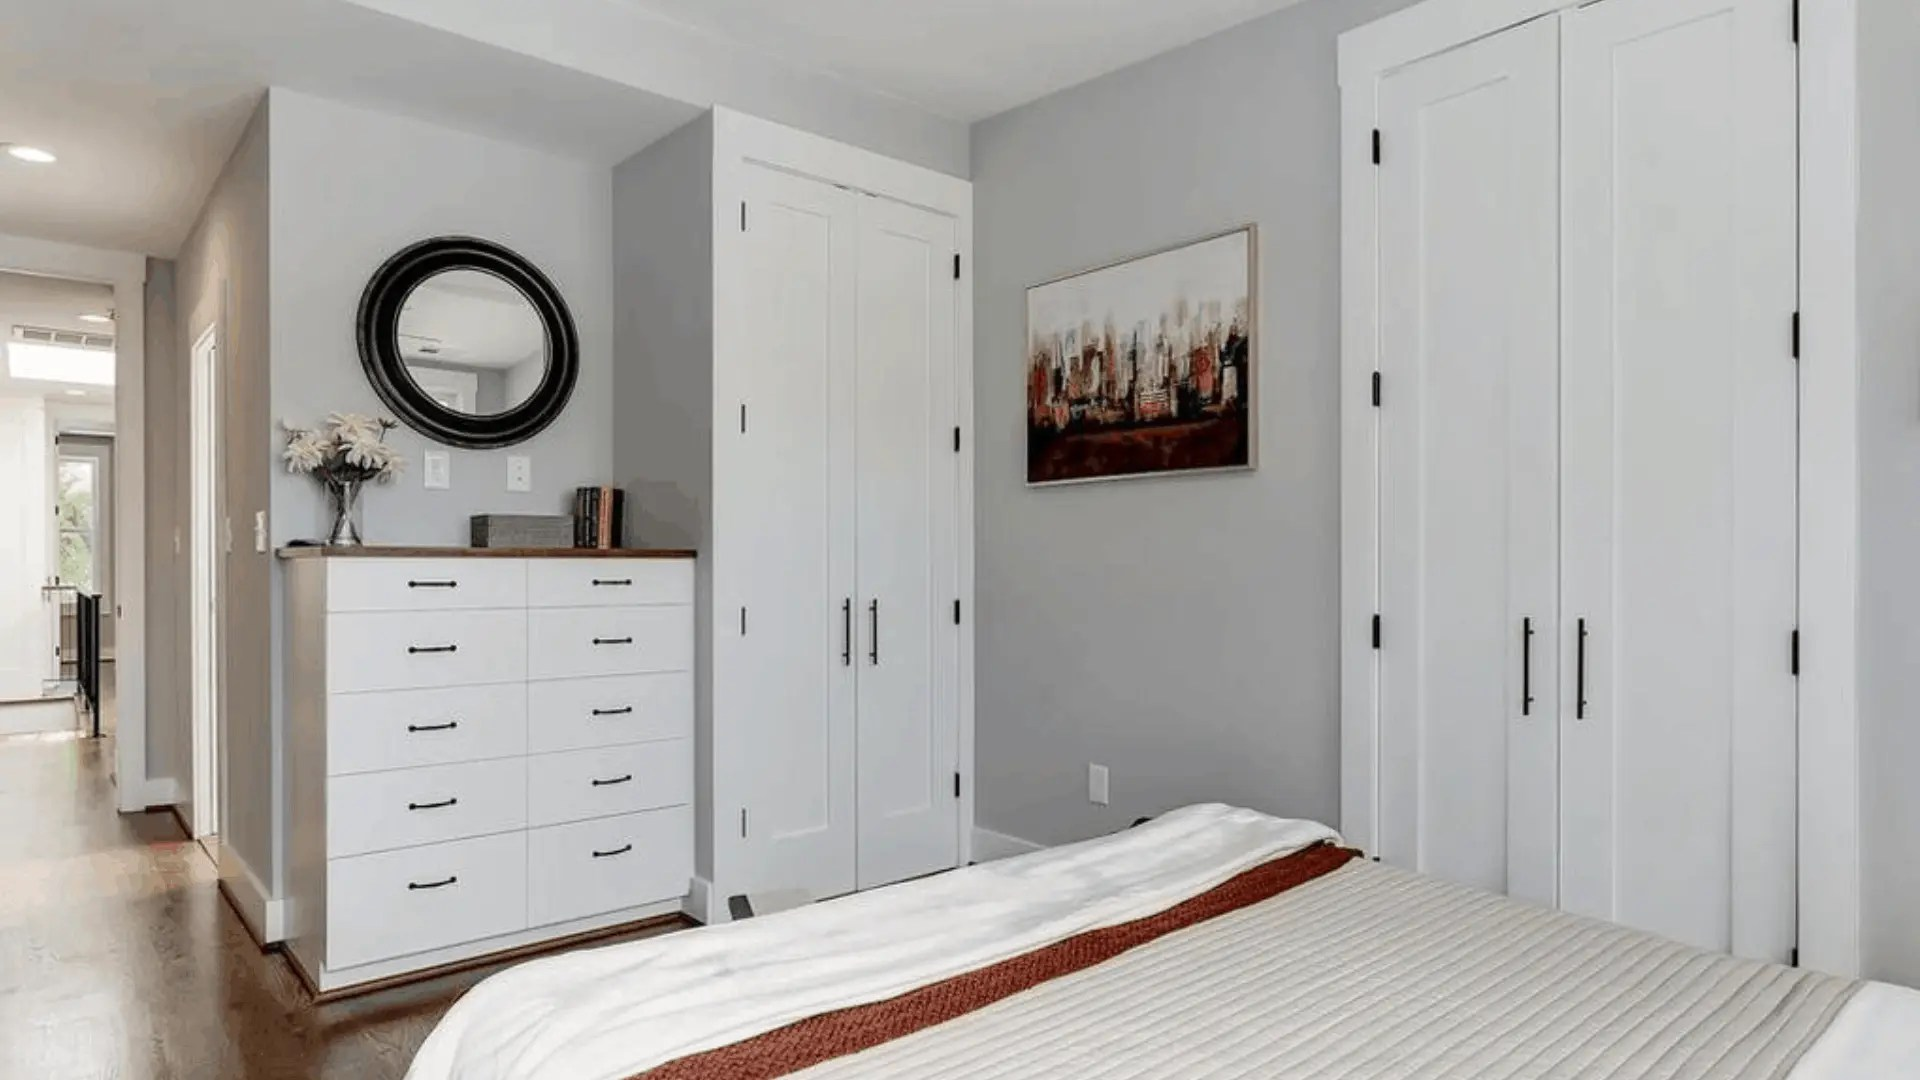 245_Tennessee_NE_bedroom_custom_cabinets_closets_1920x1080